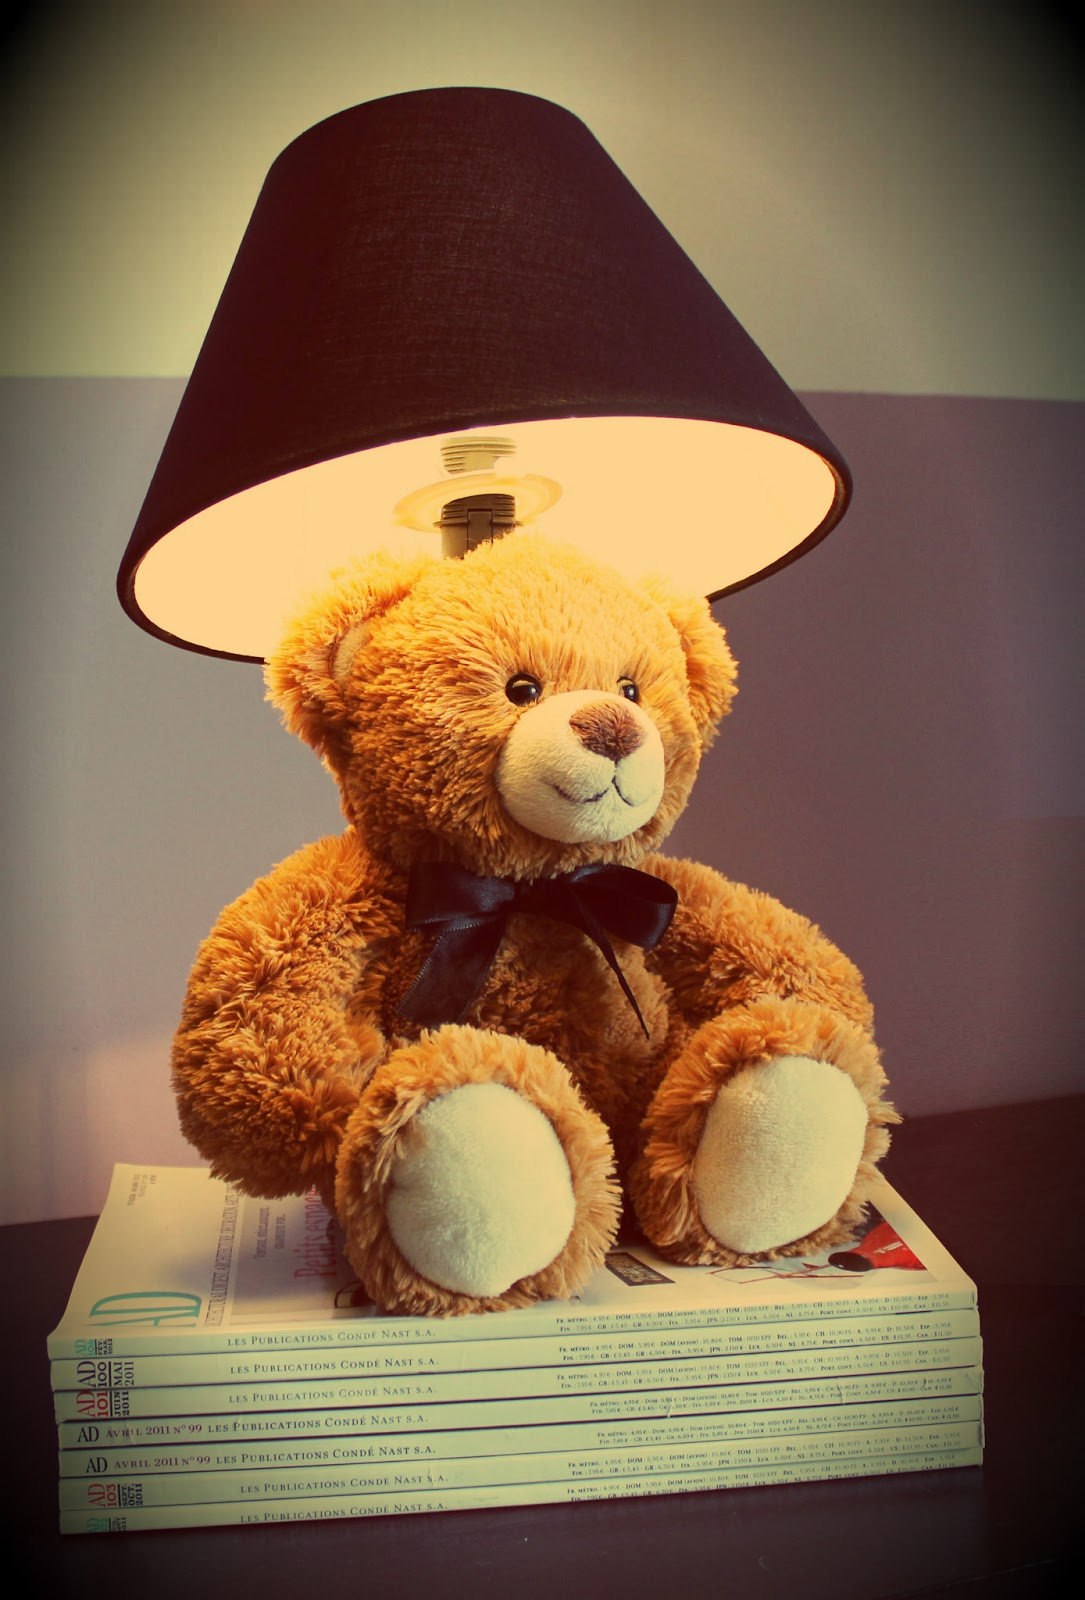 divin 39 id le blog d co lampe enfant teddy bear r alisation divin 39 id teddy bear lamp children. Black Bedroom Furniture Sets. Home Design Ideas